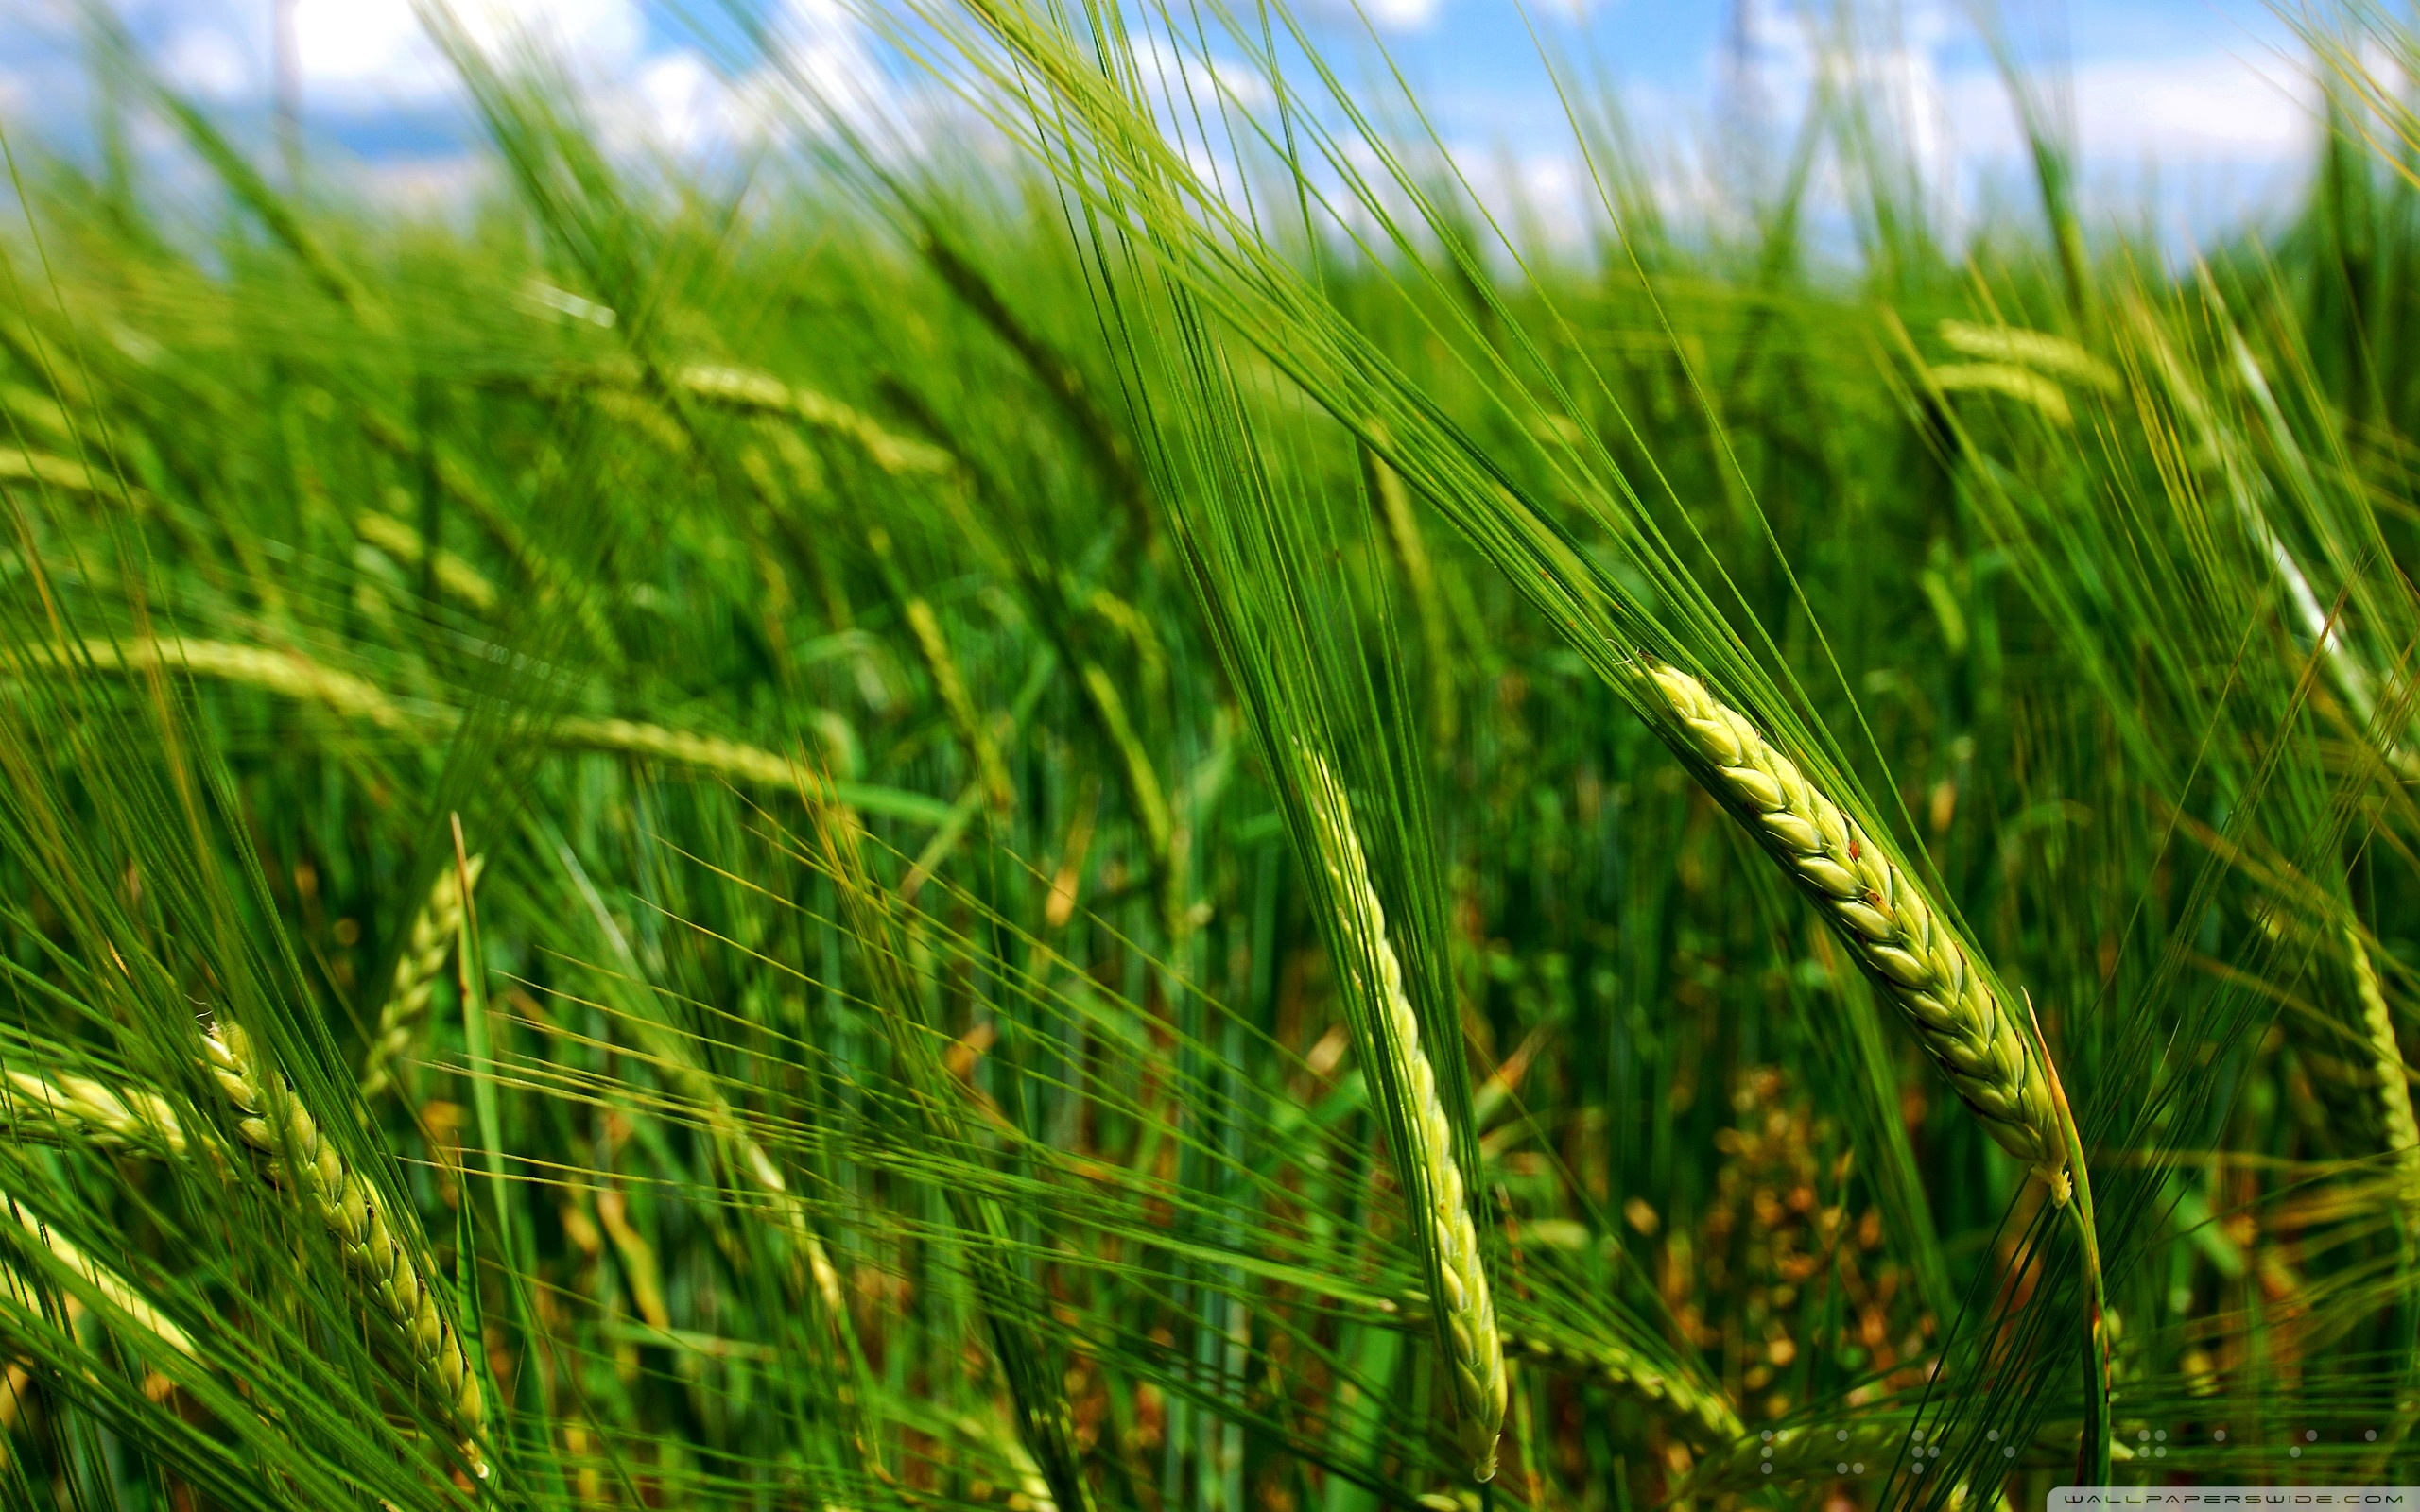 Green Wheat Spikes ❤ 4K HD Desktop Wallpaper for 4K Ultra HD TV ...